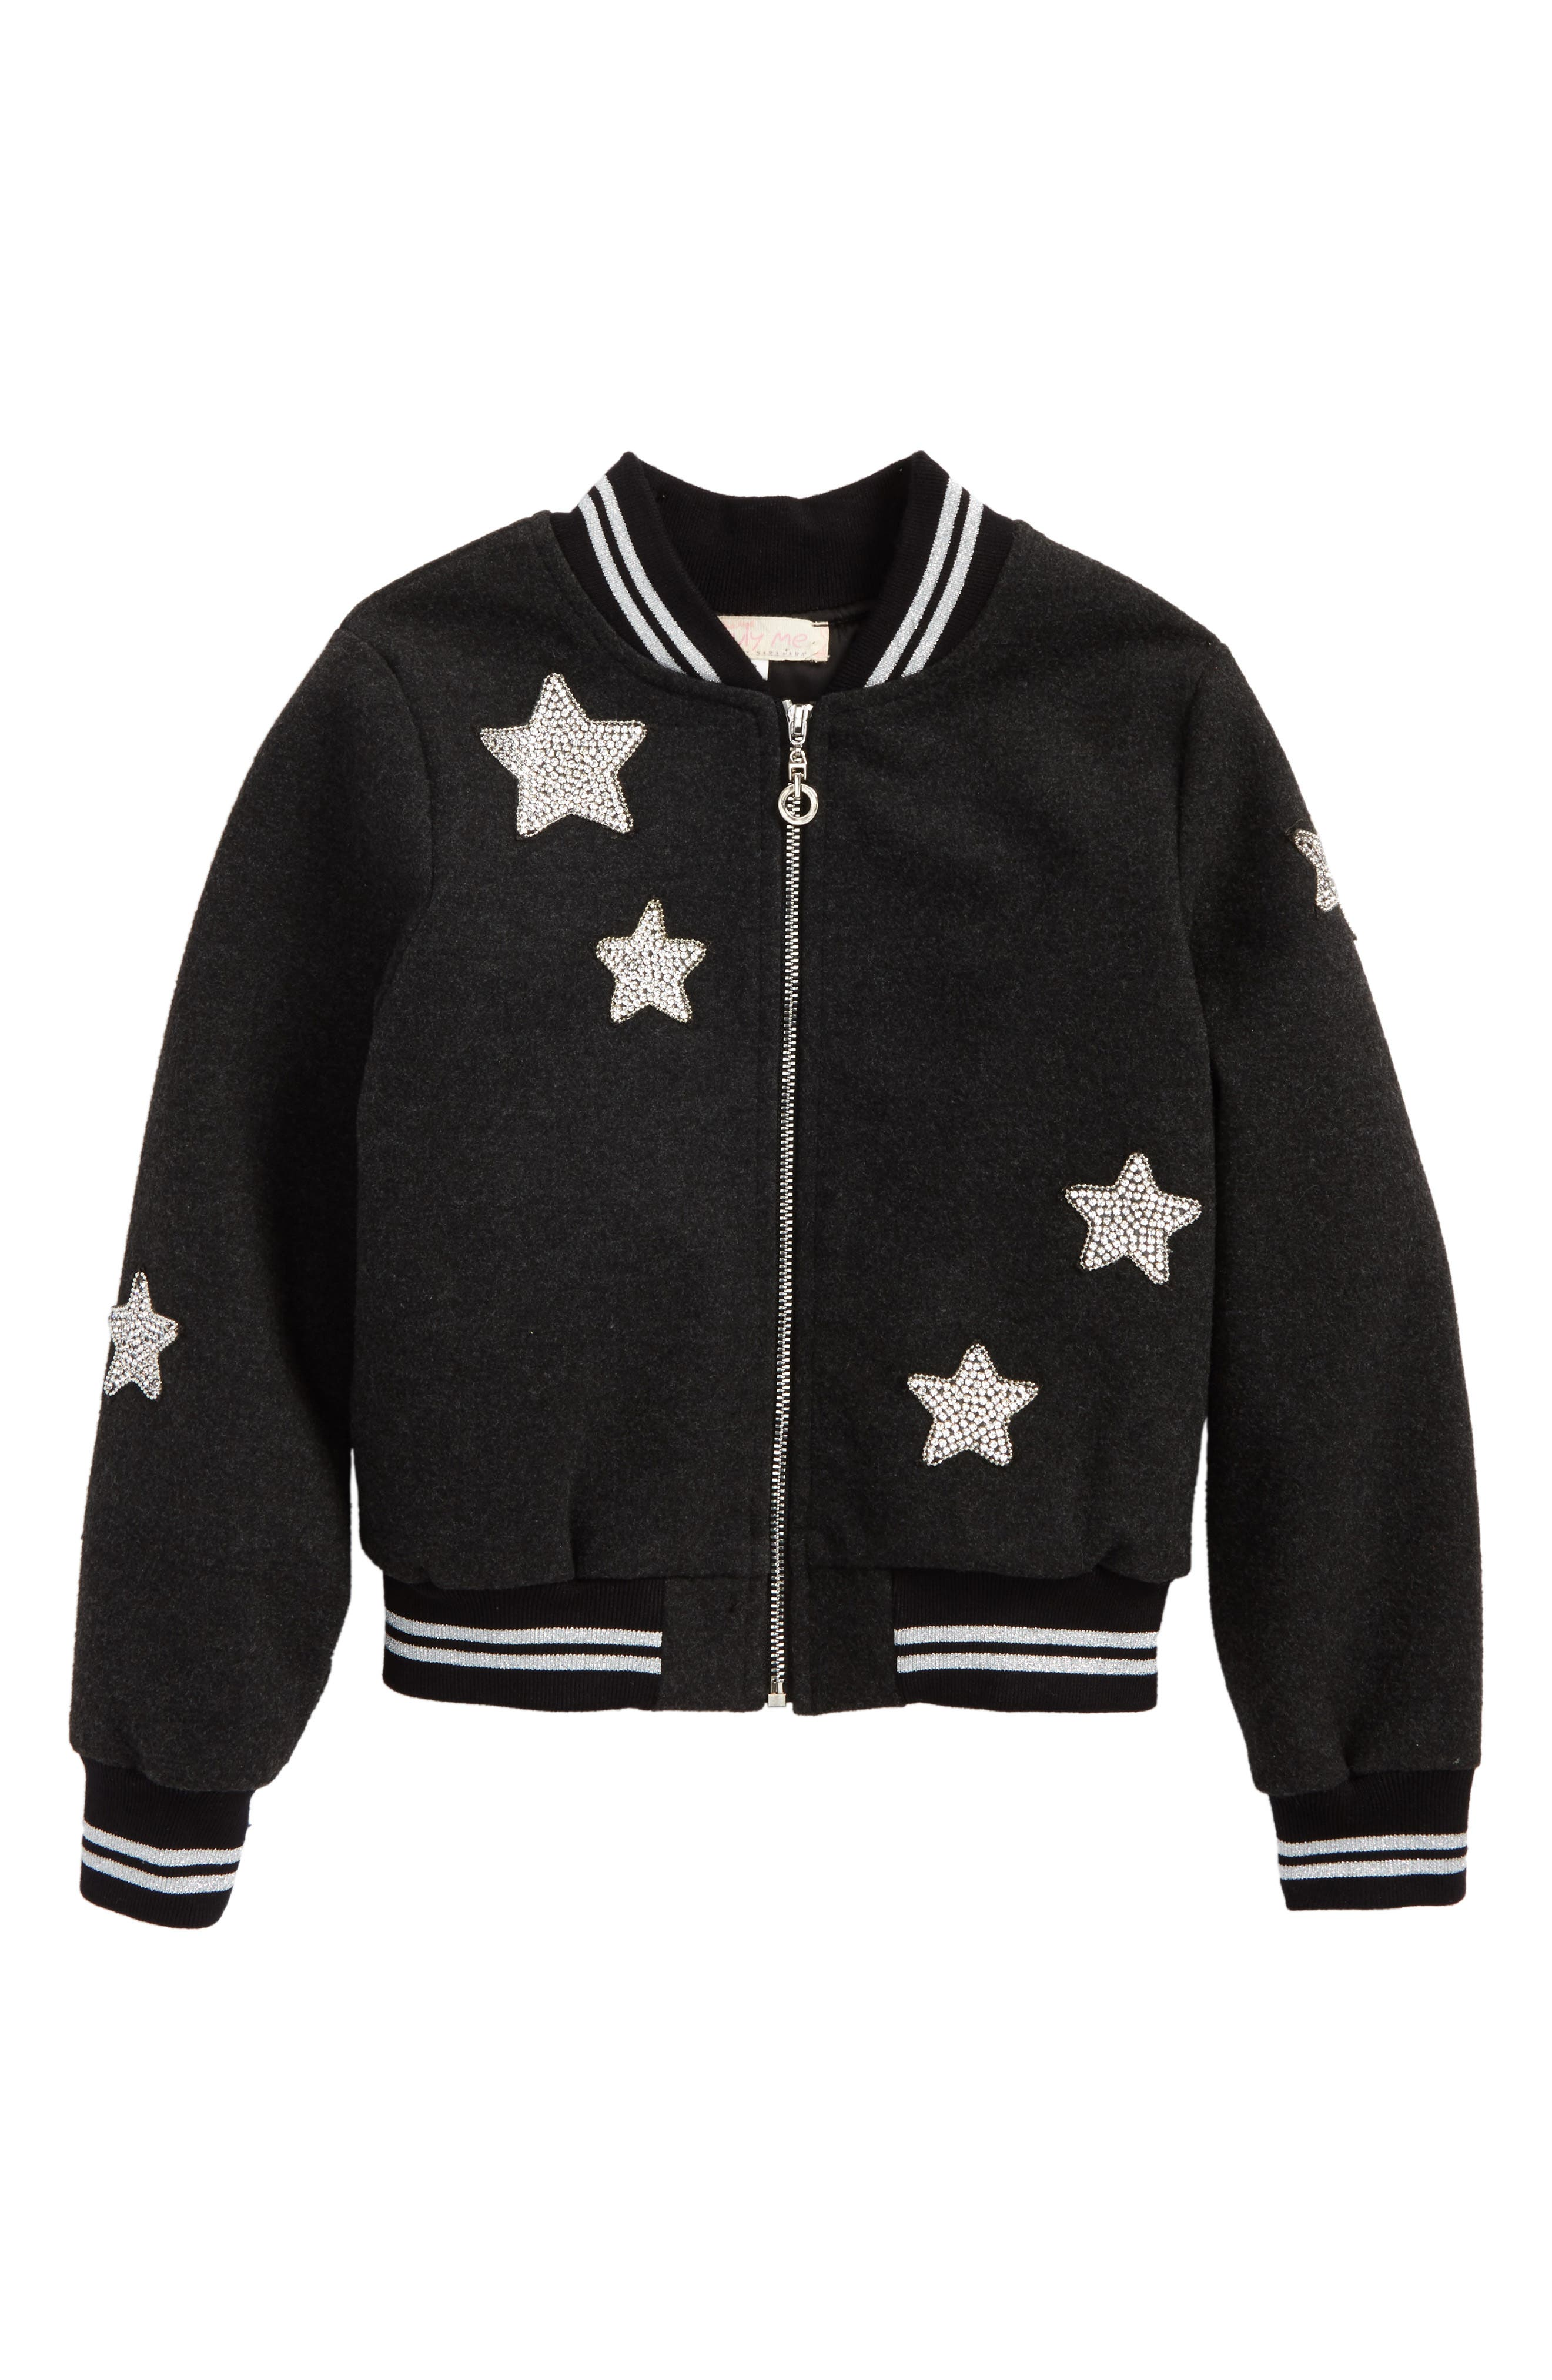 Alternate Image 1 Selected - Truly Me Star Patch Bomber Jacket (Toddler Girls & Little Girls)